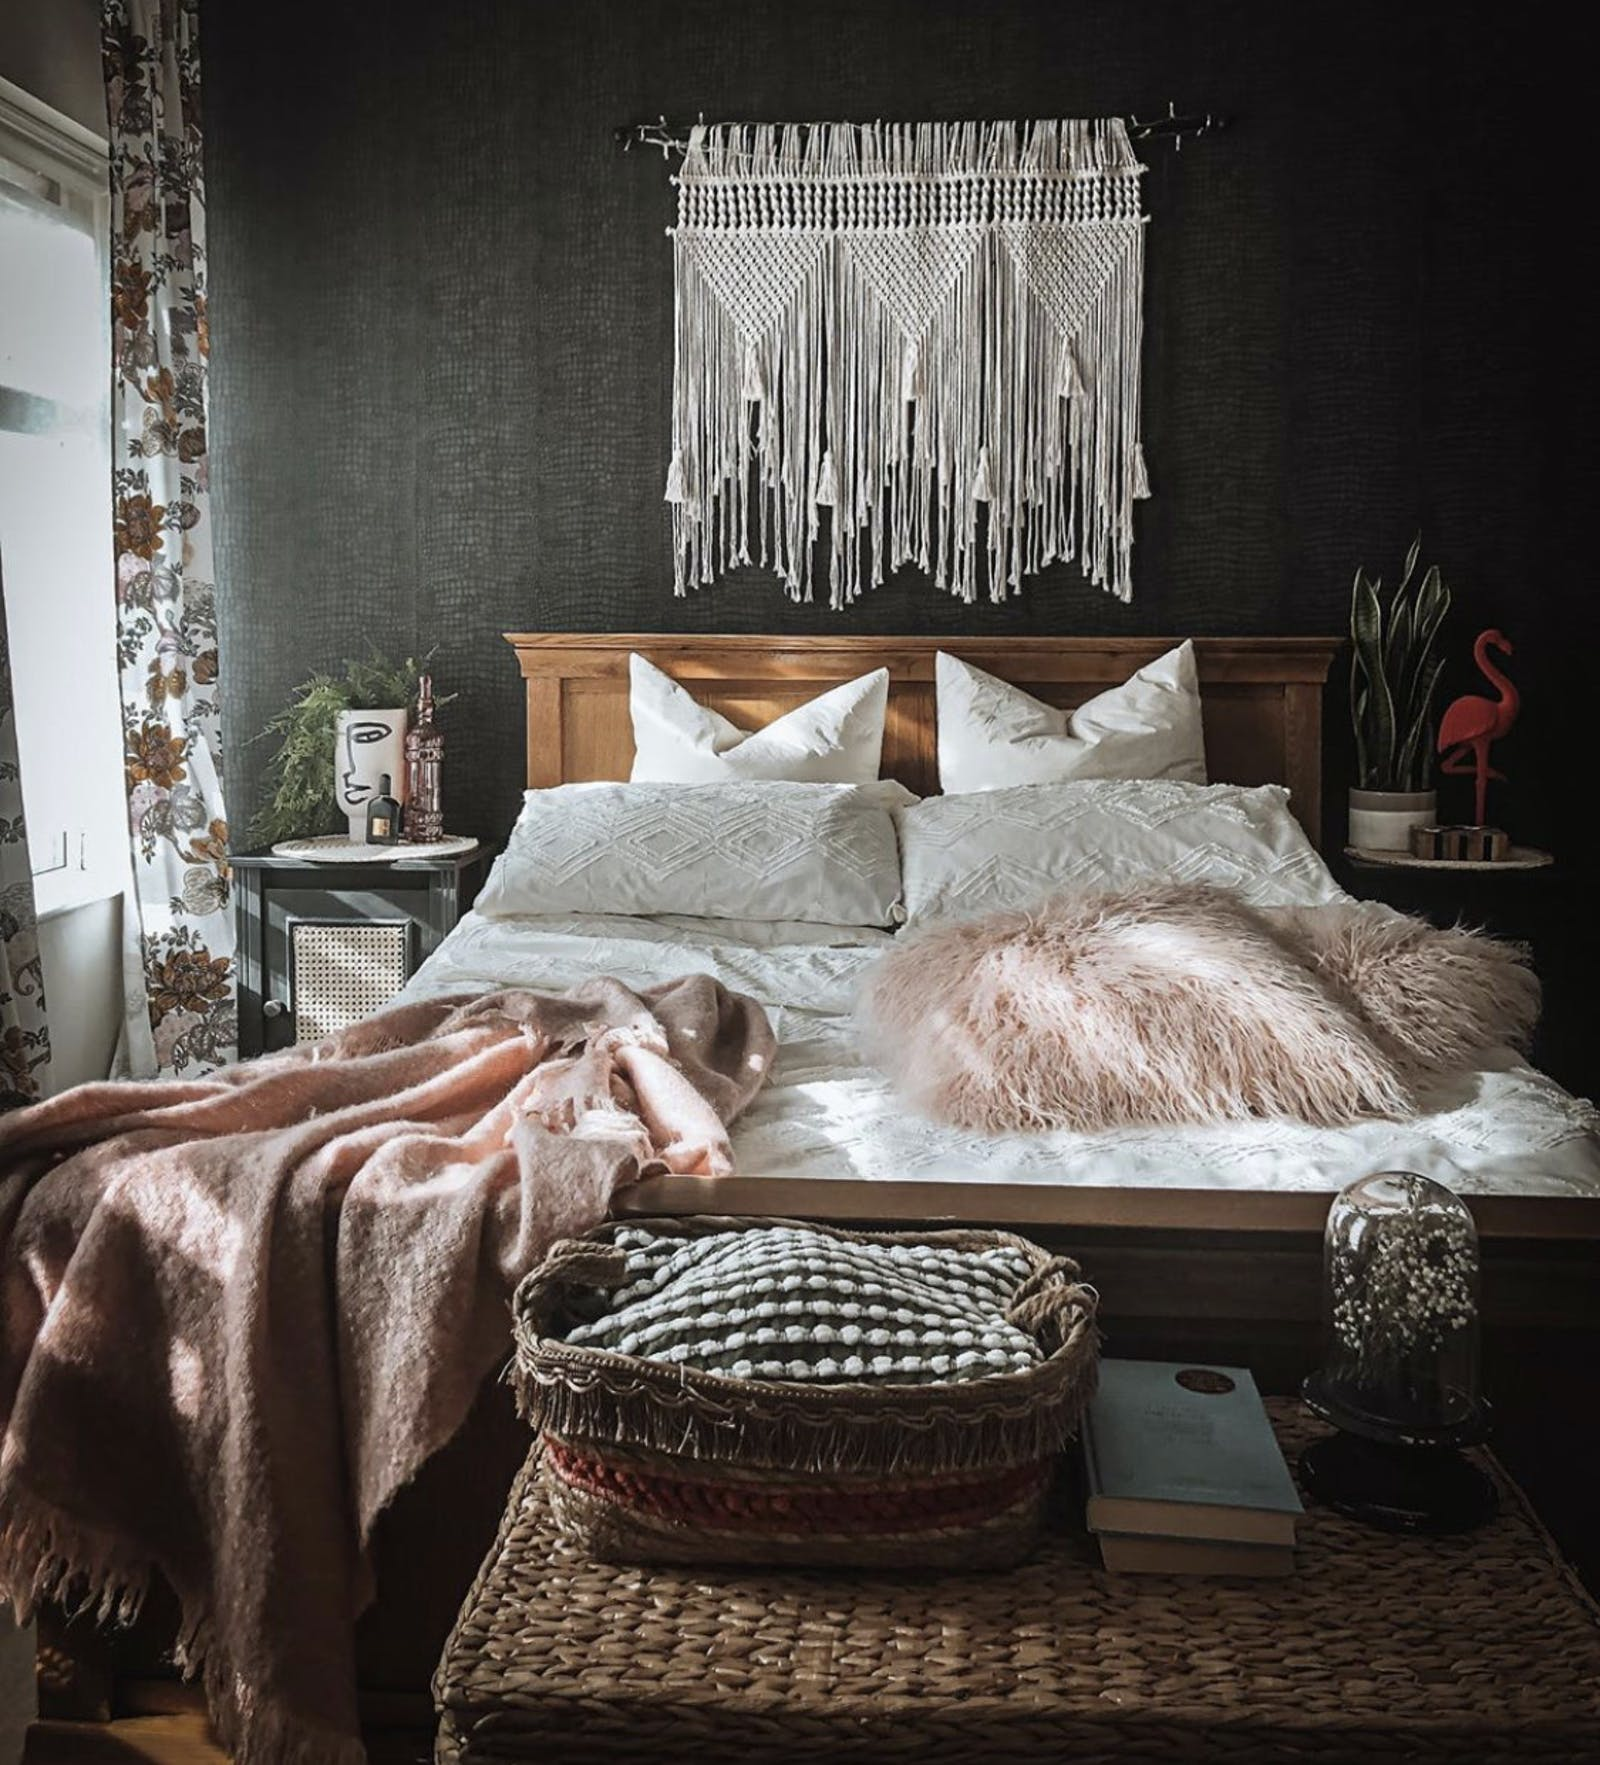 Boho bedroom in dark colours with a lot of textures